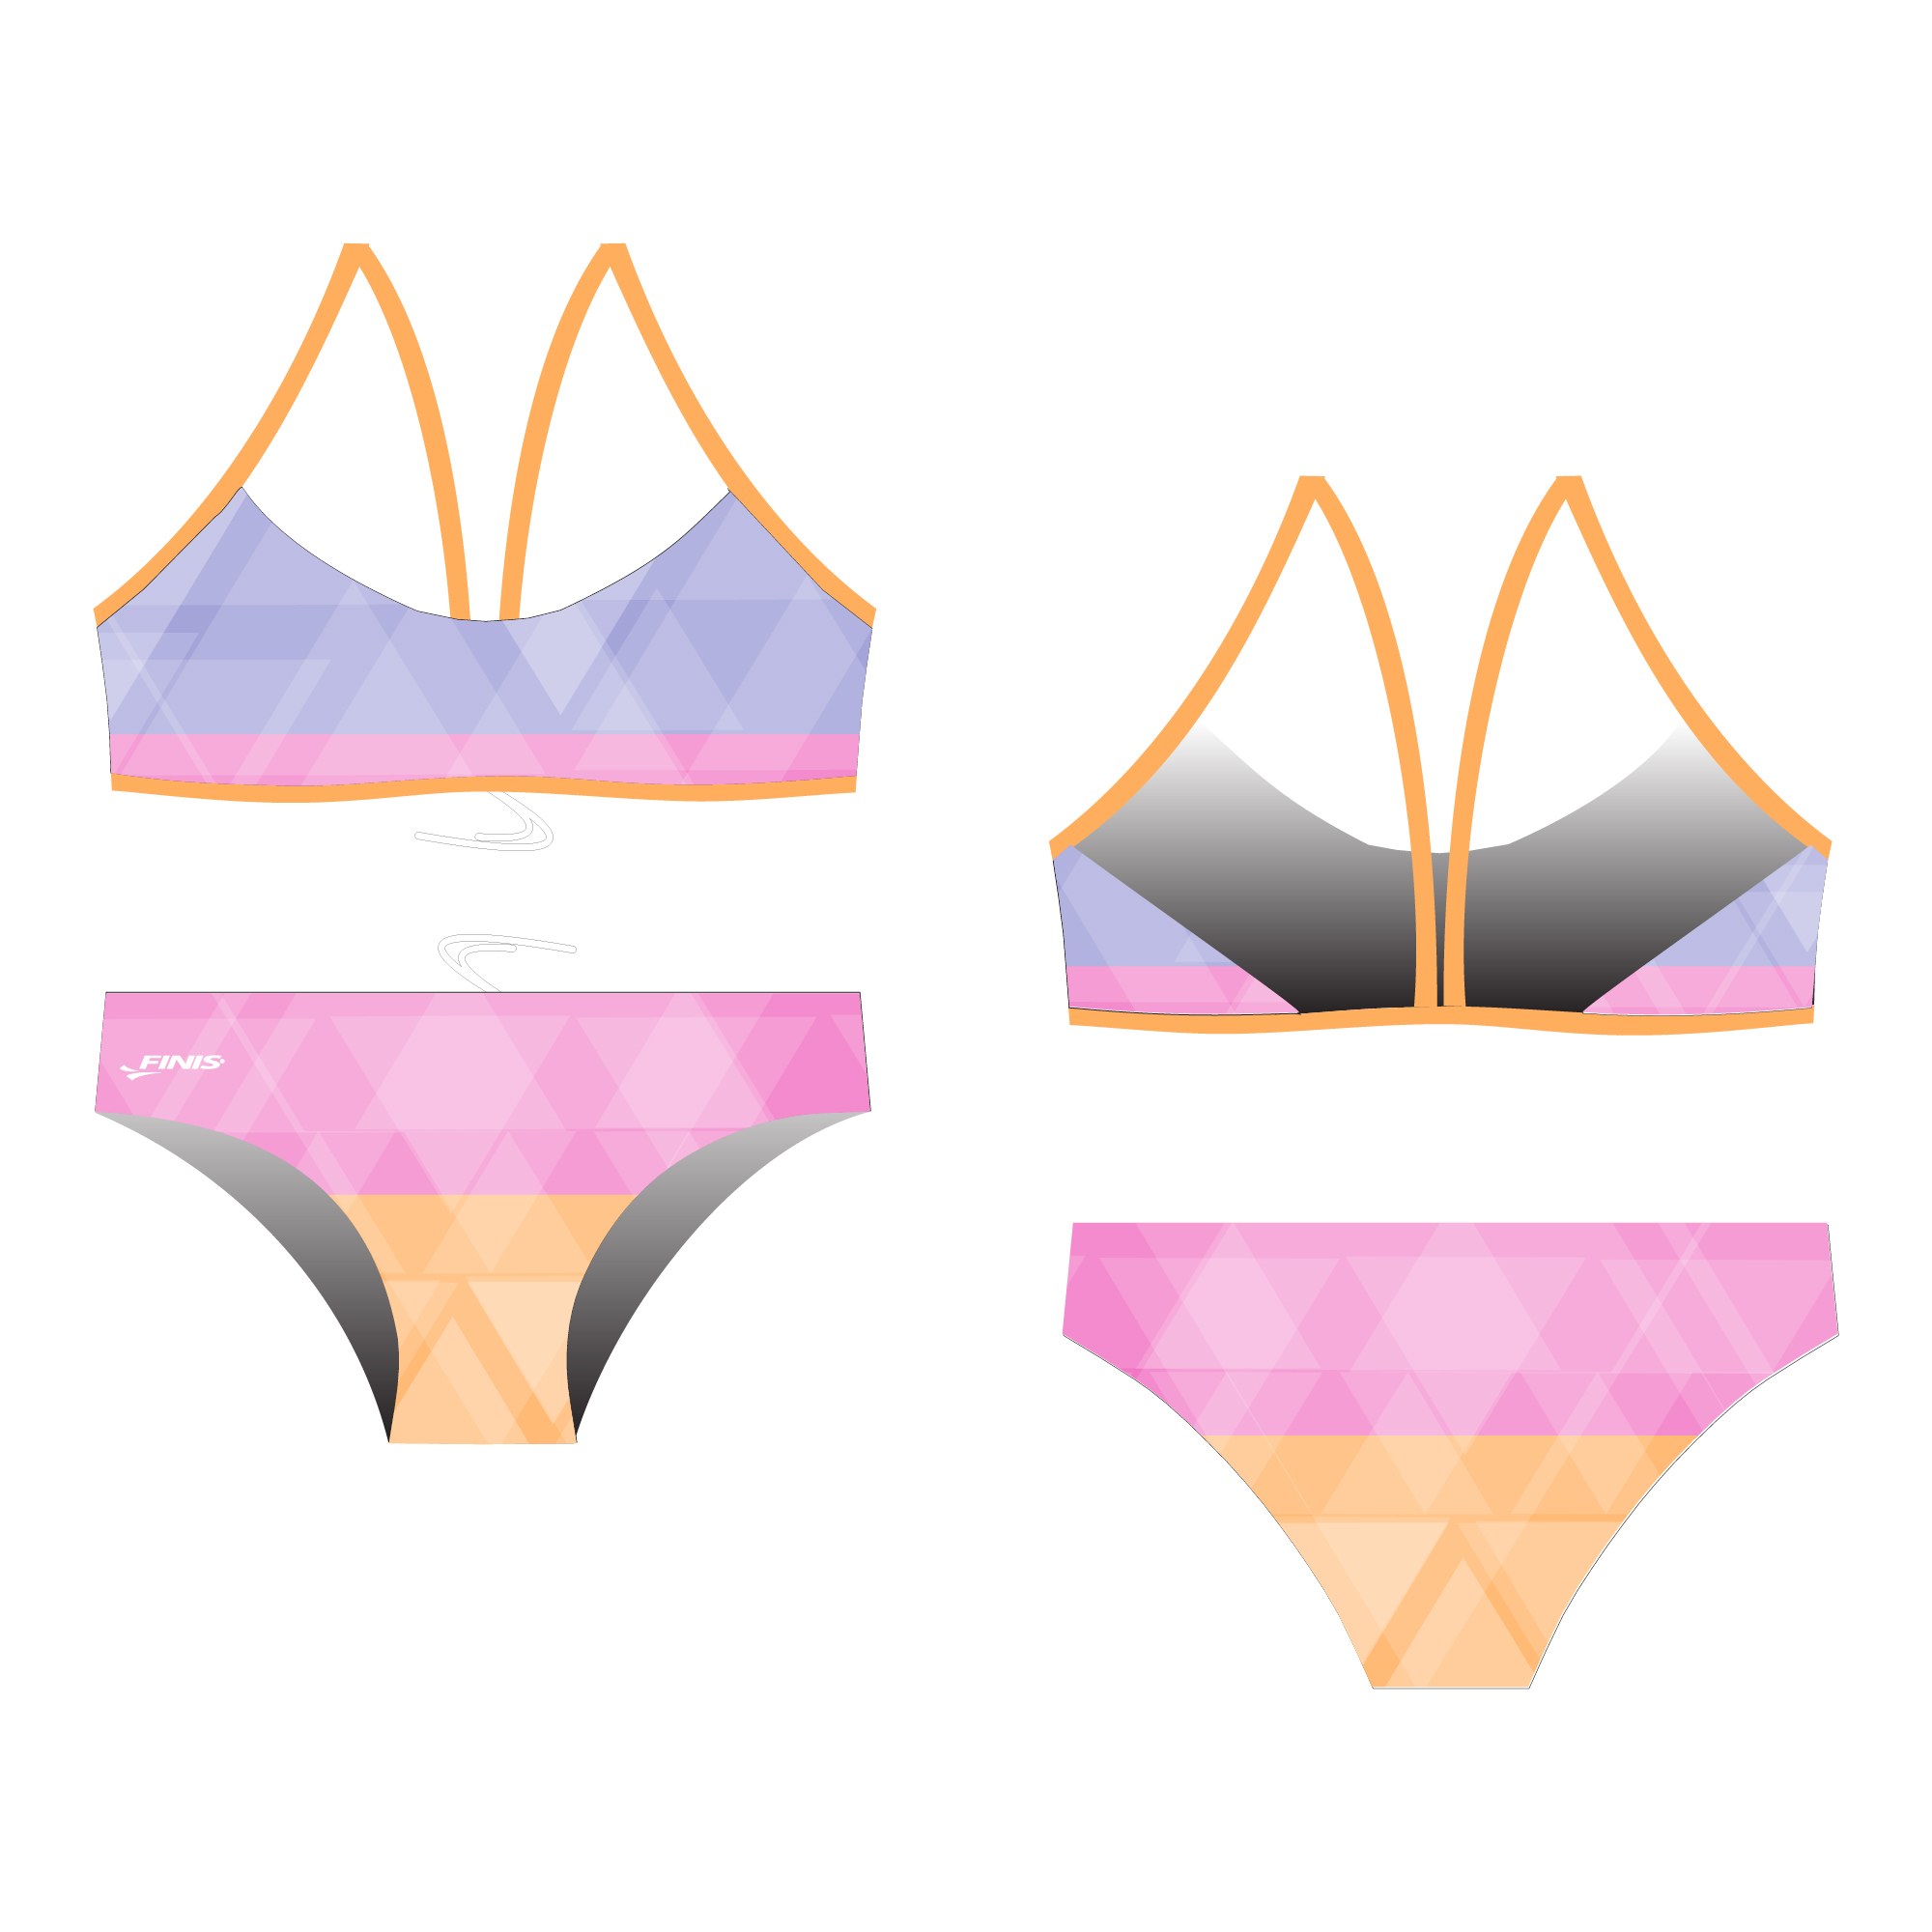 Triangular germetric design in pastal colors on a finis custom bikini open back swimsuit proof.